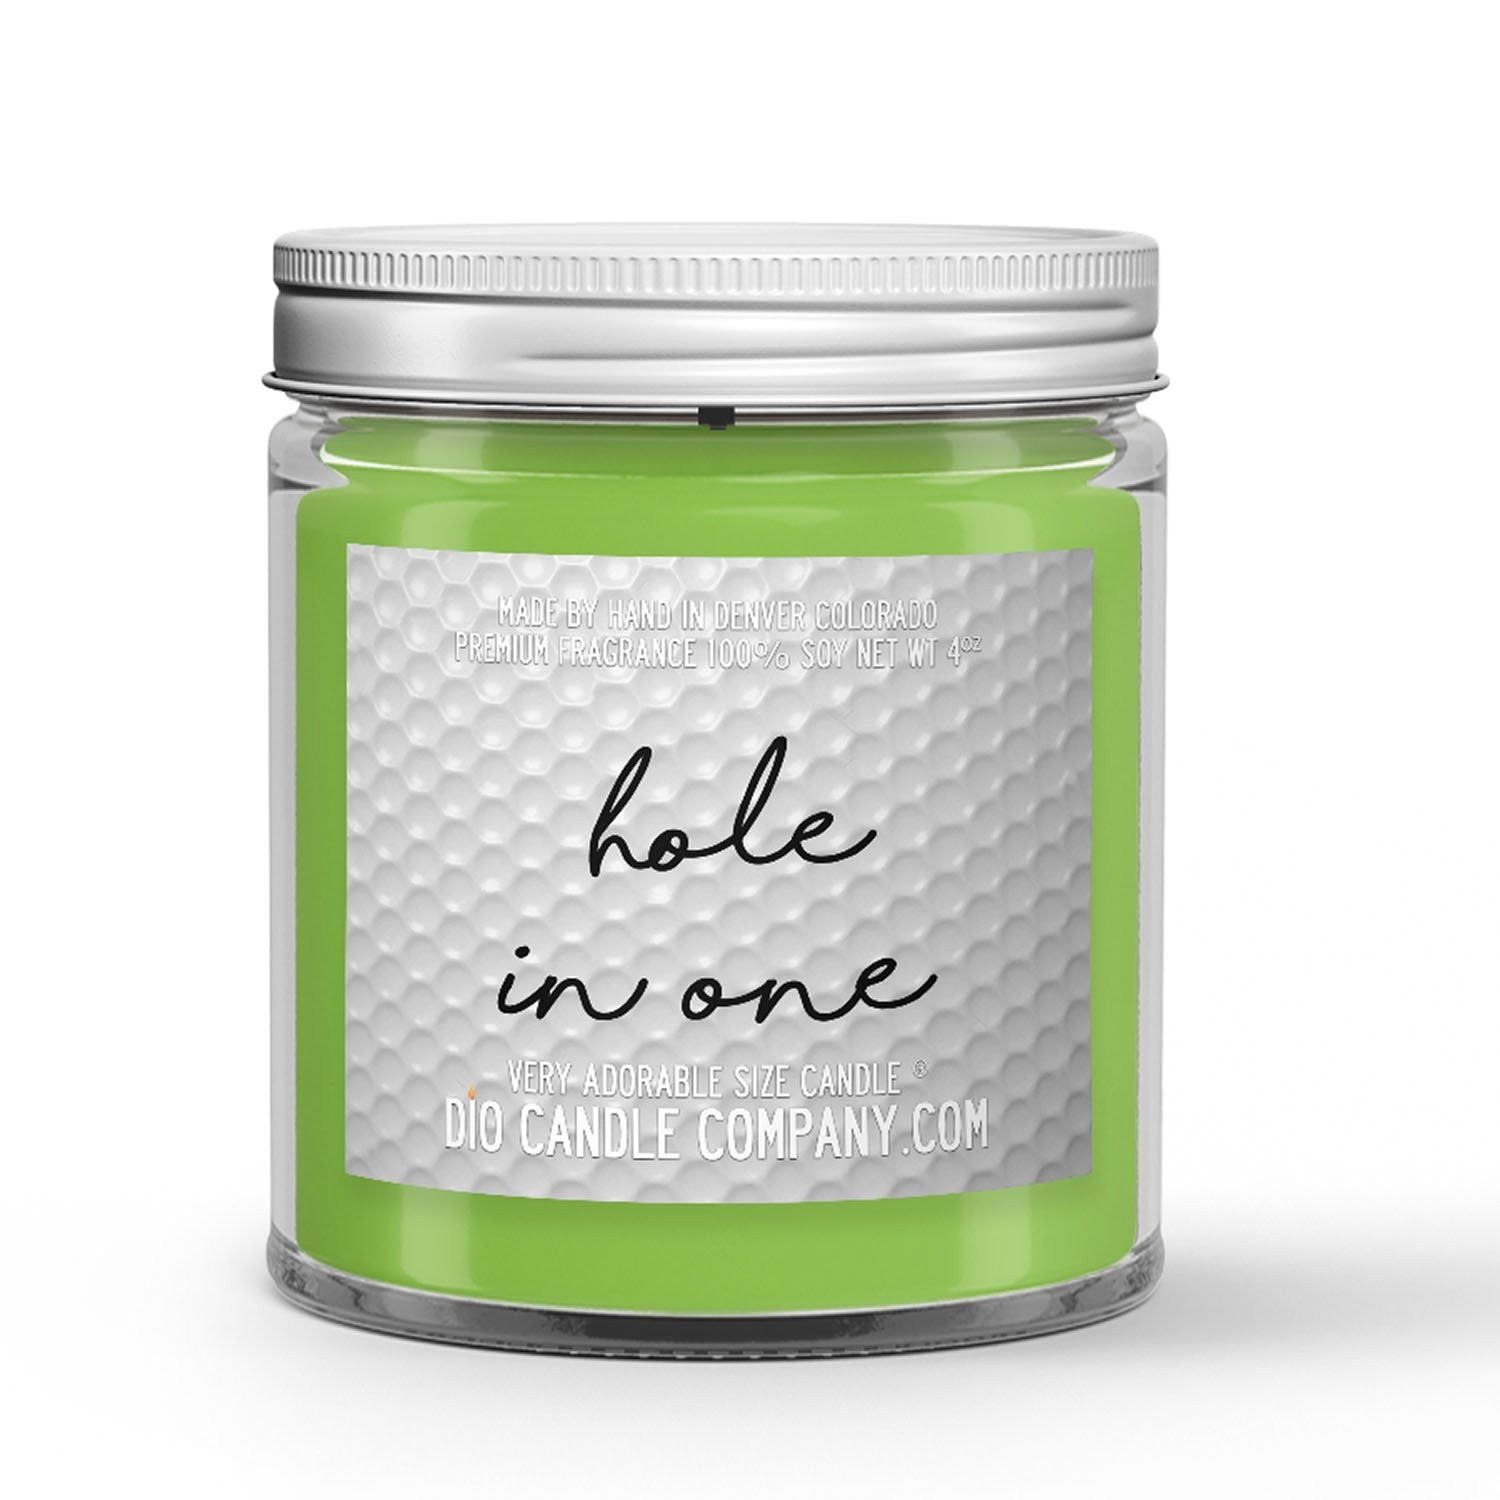 Hole in One Golf Candle - Fresh Air - Green Grass - Wind - 4oz Very Adorable Size Candle® - Dio Candle Company